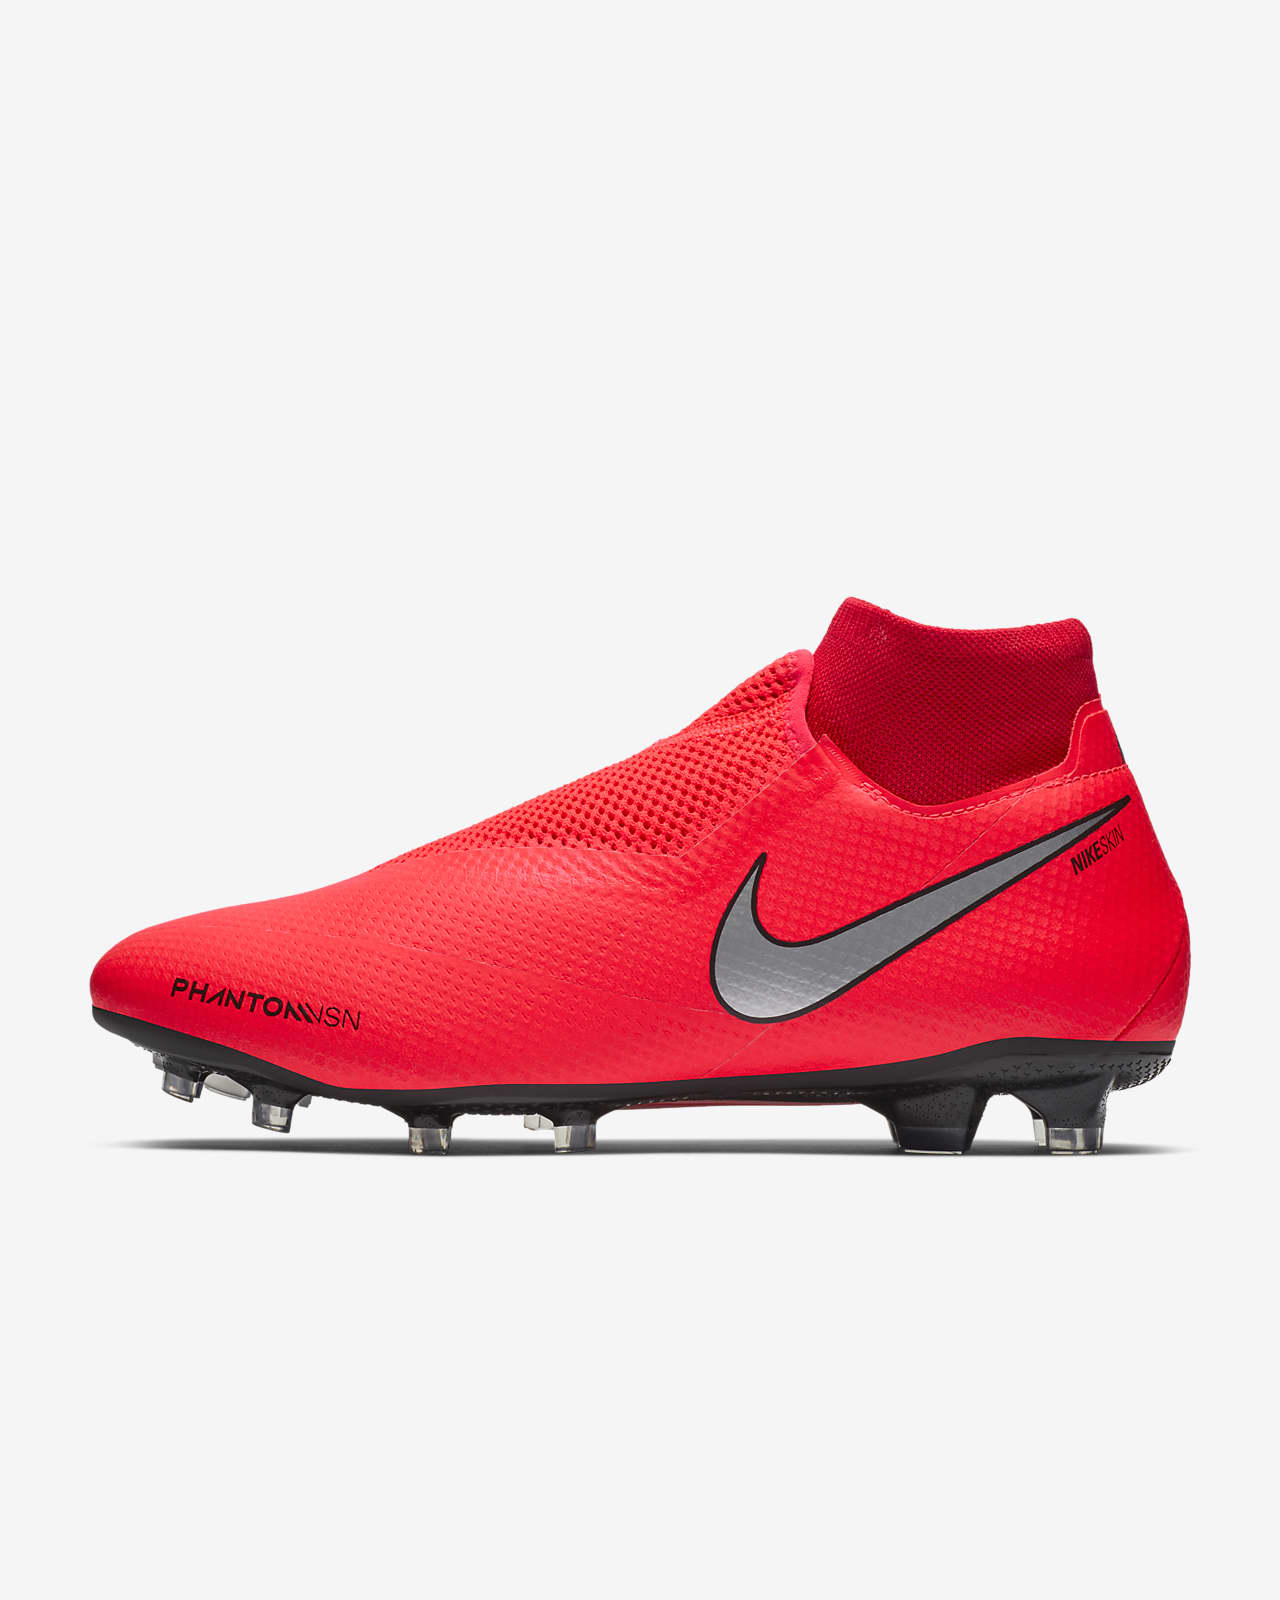 Nike PhantomVSN Pro Dynamic Fit Game Over FG Firm-Ground Soccer Cleat